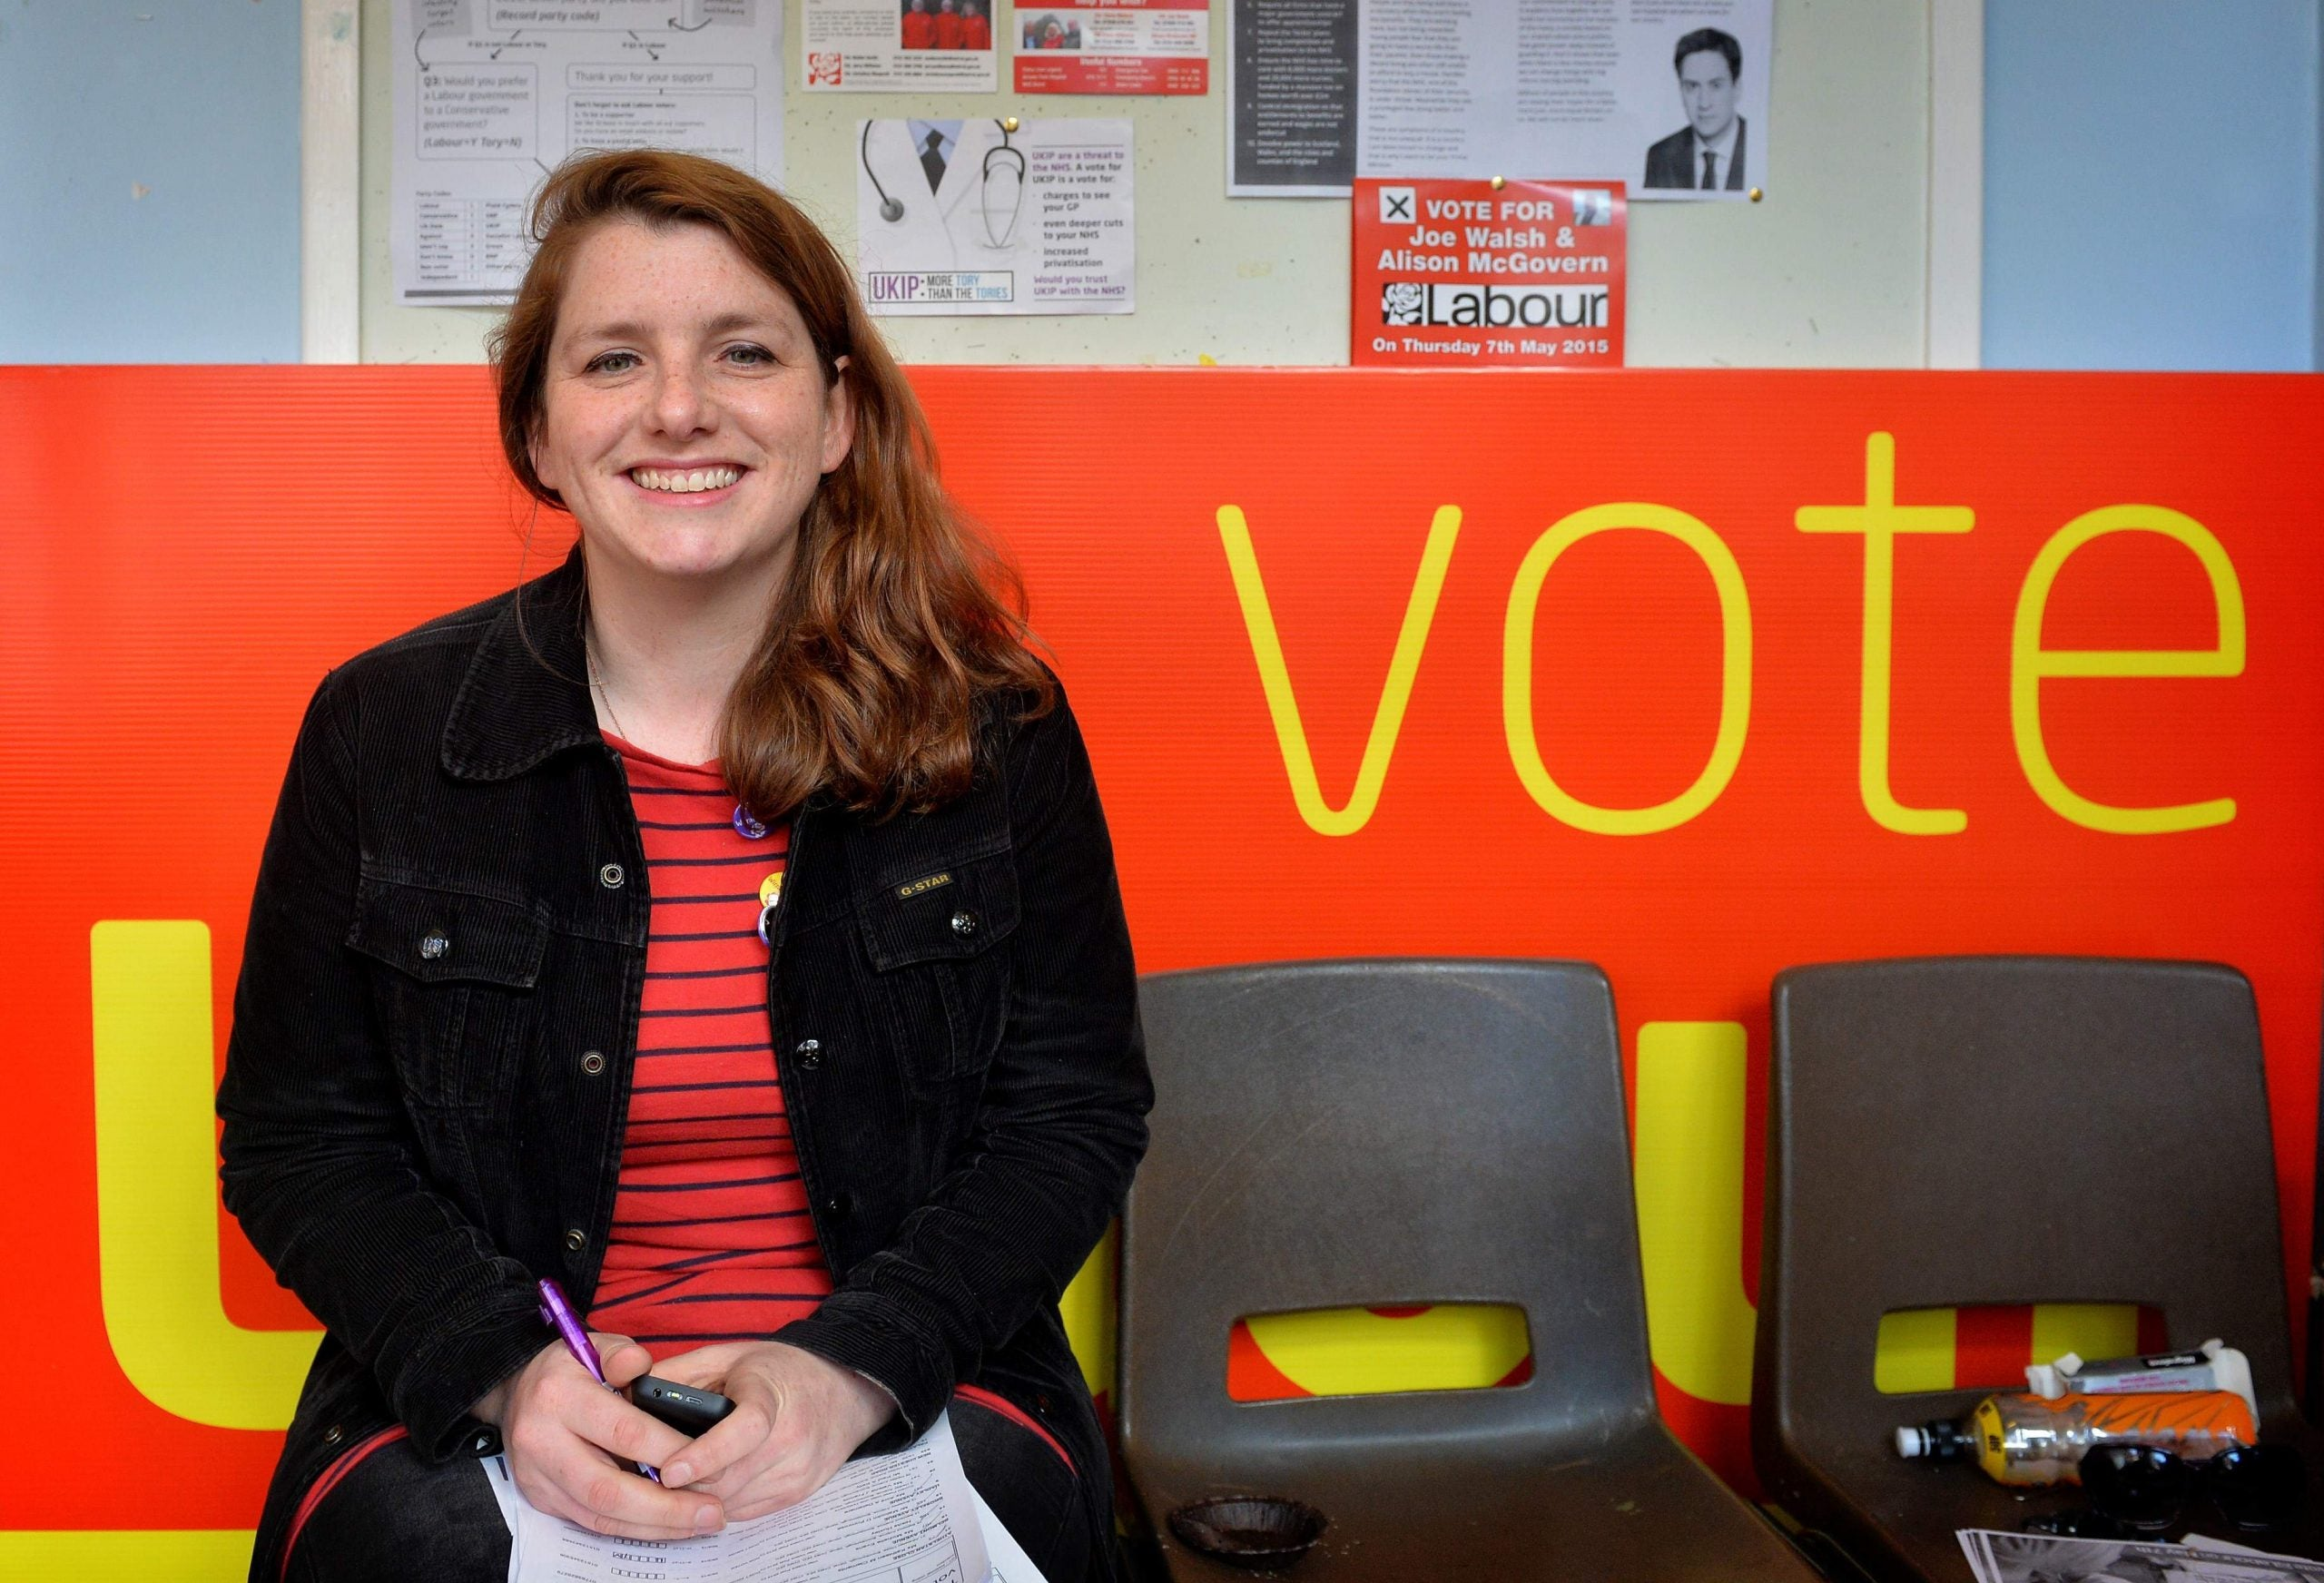 Young voters lost the referendum but they still deserve a future